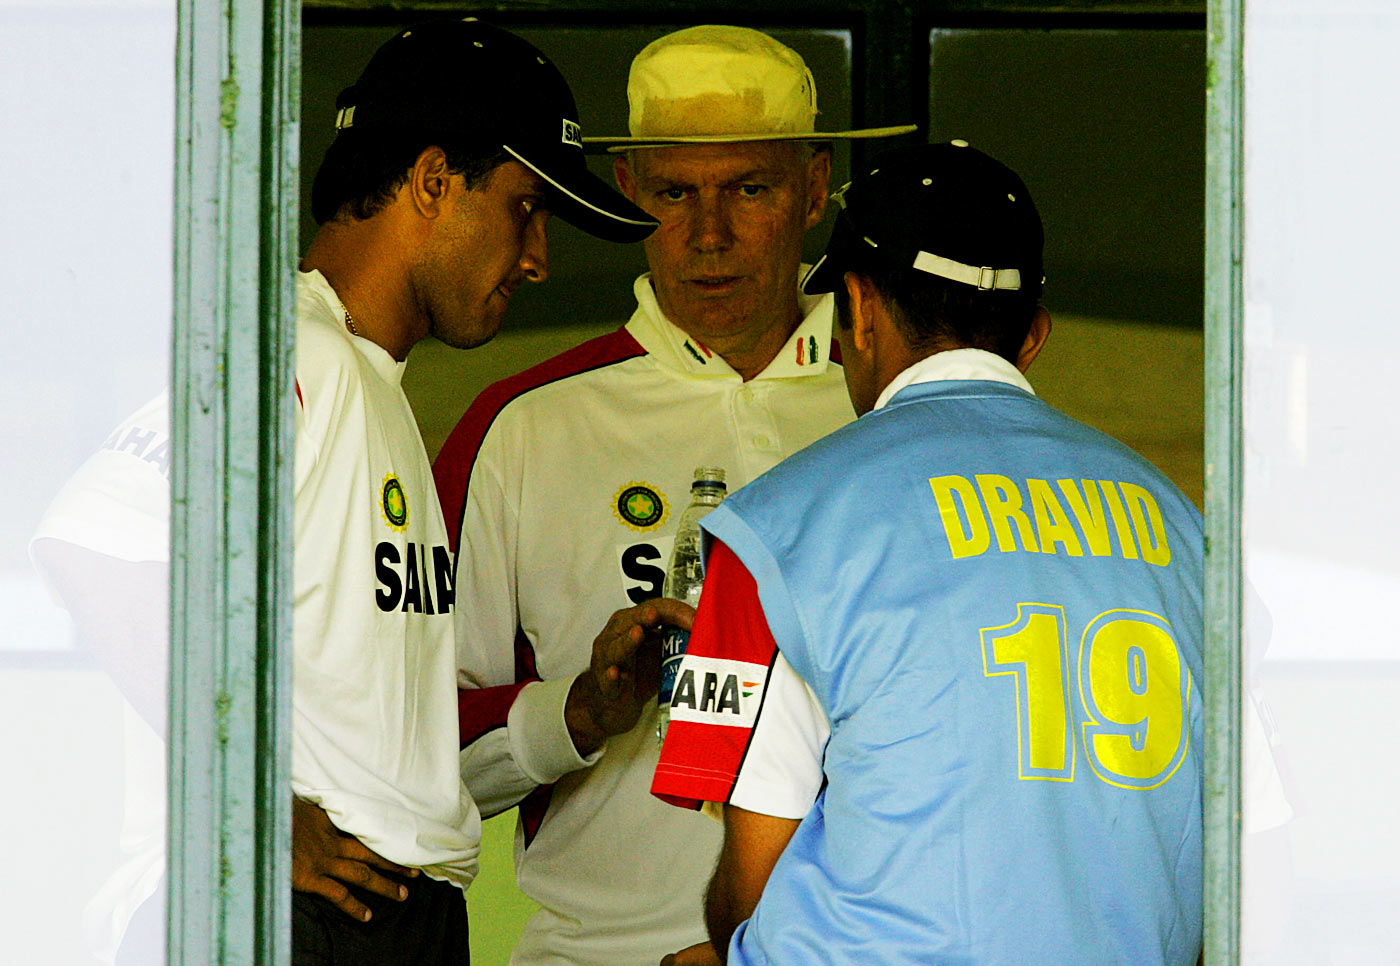 I Conquered The Country But Not One Of Its Citizens, Says Sourav Ganguly On Chappell Saga